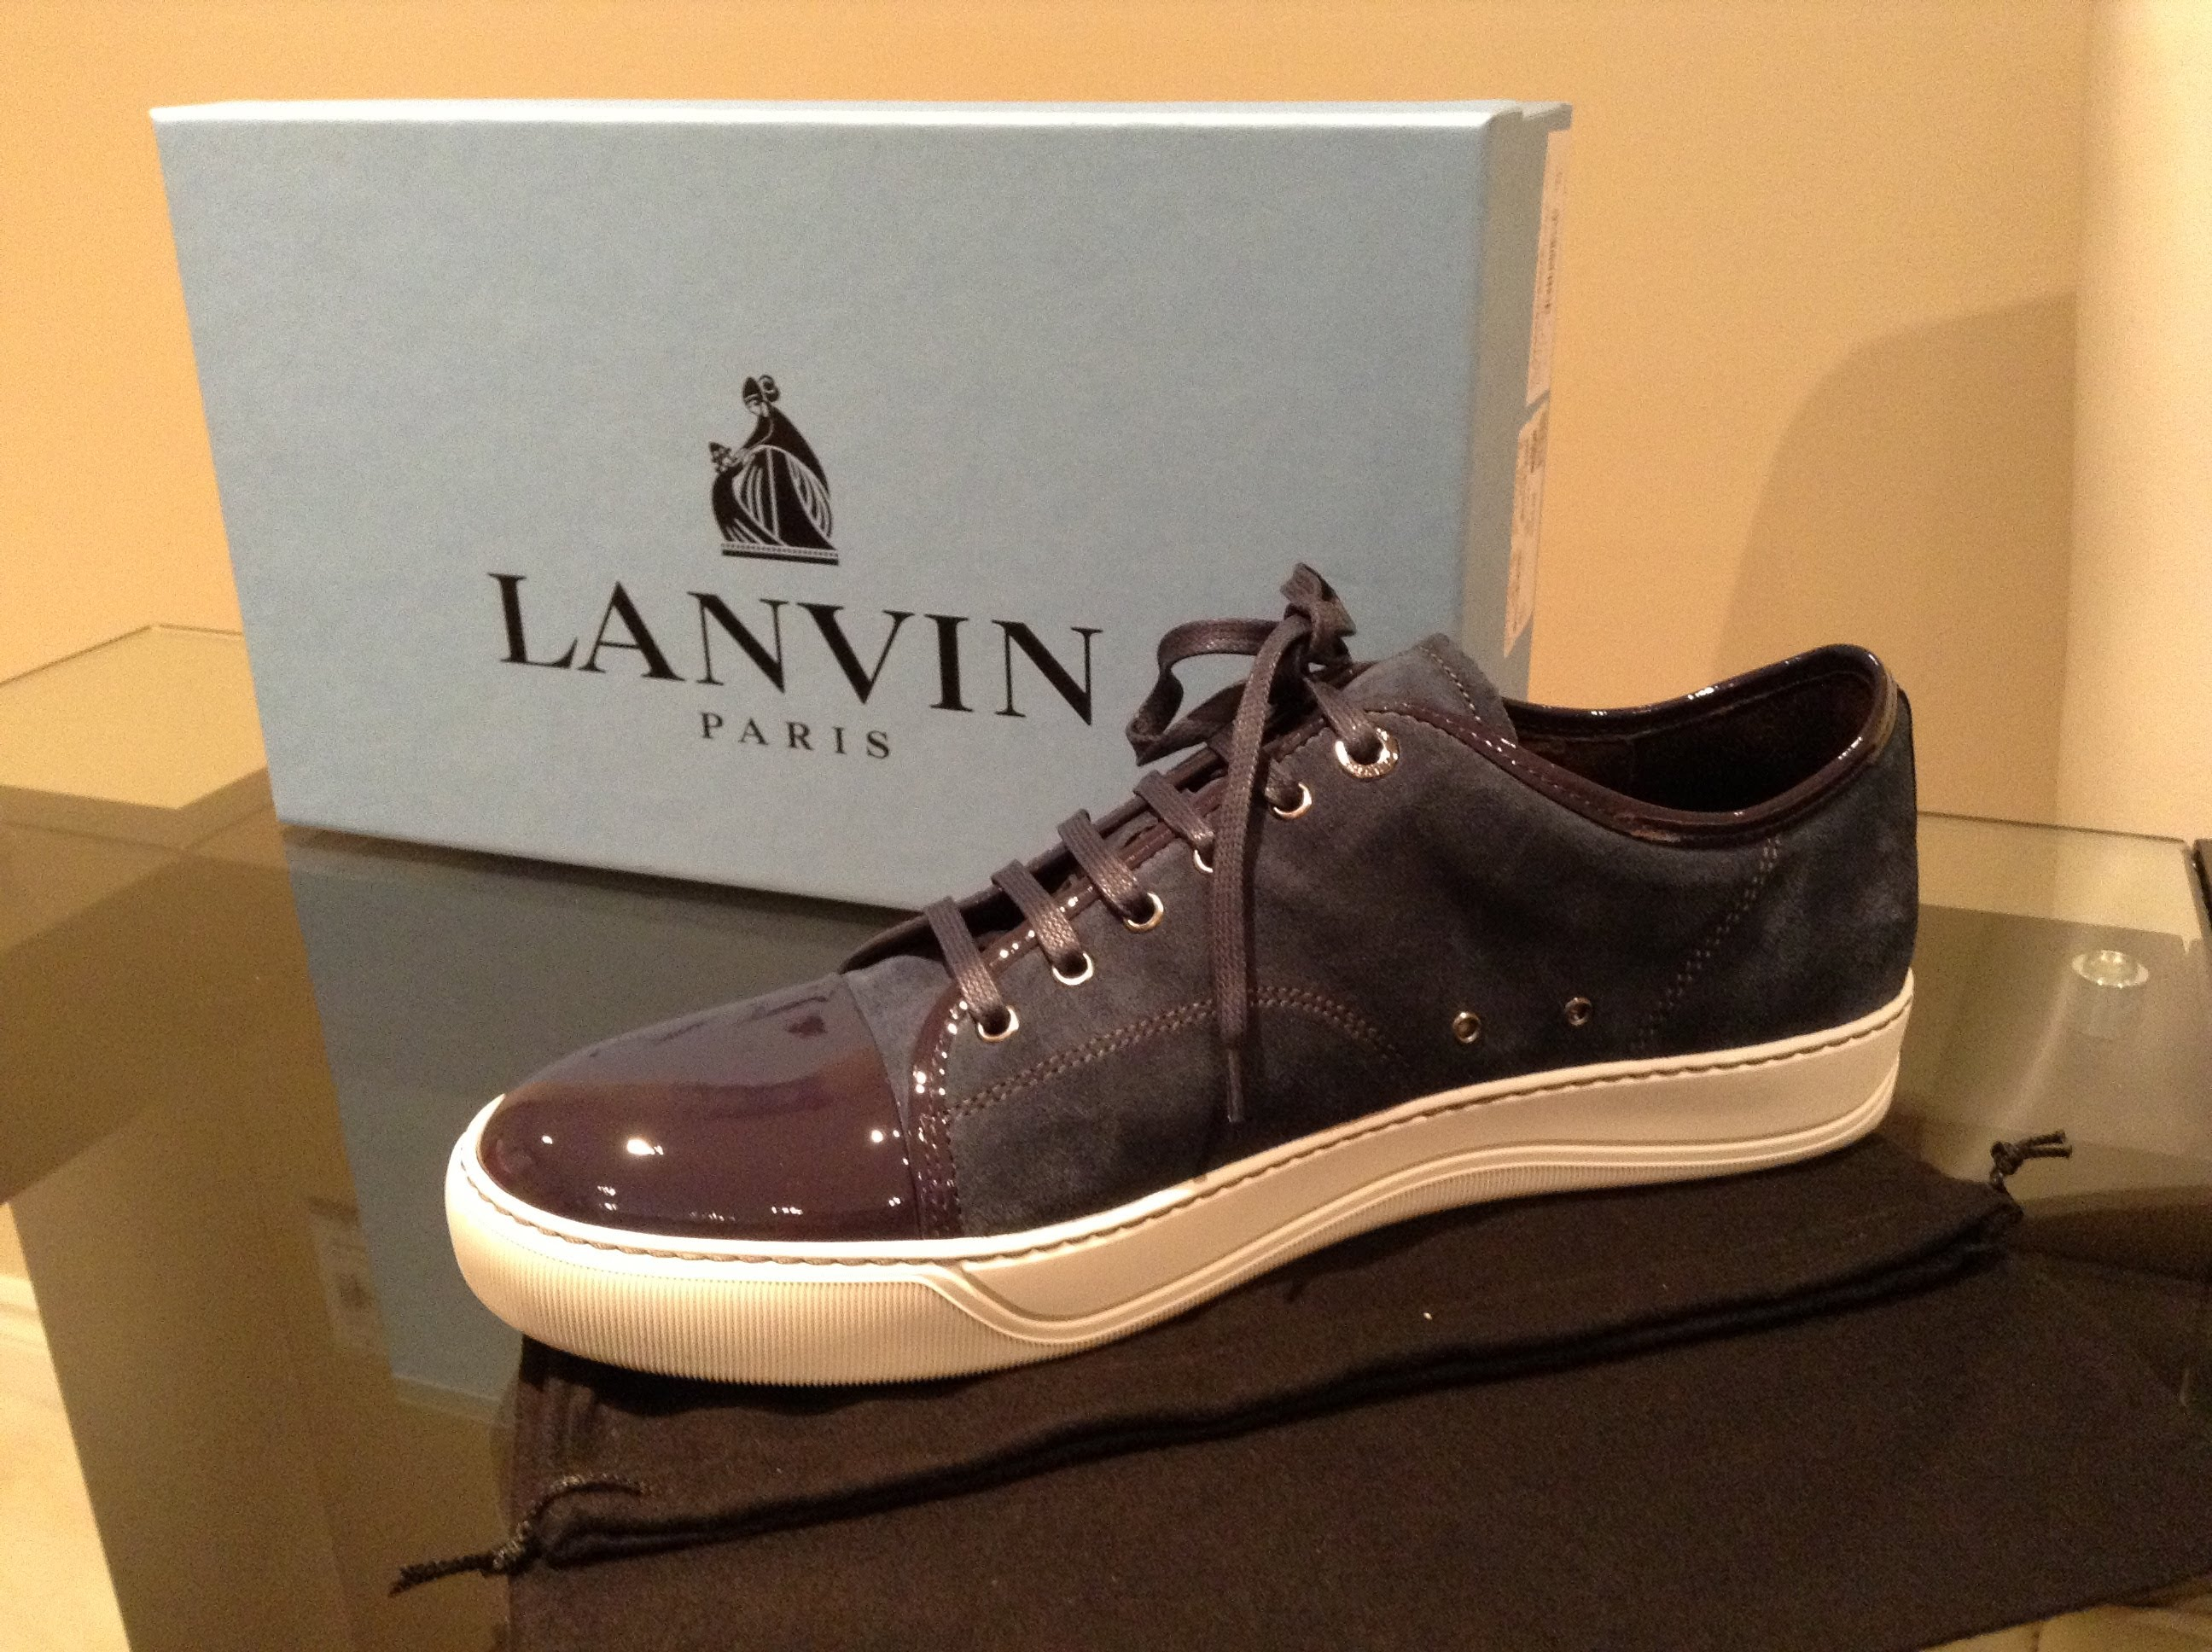 lanvin sneakers unboxing lanvin suede sneakers #1 - youtube NRGQIAP